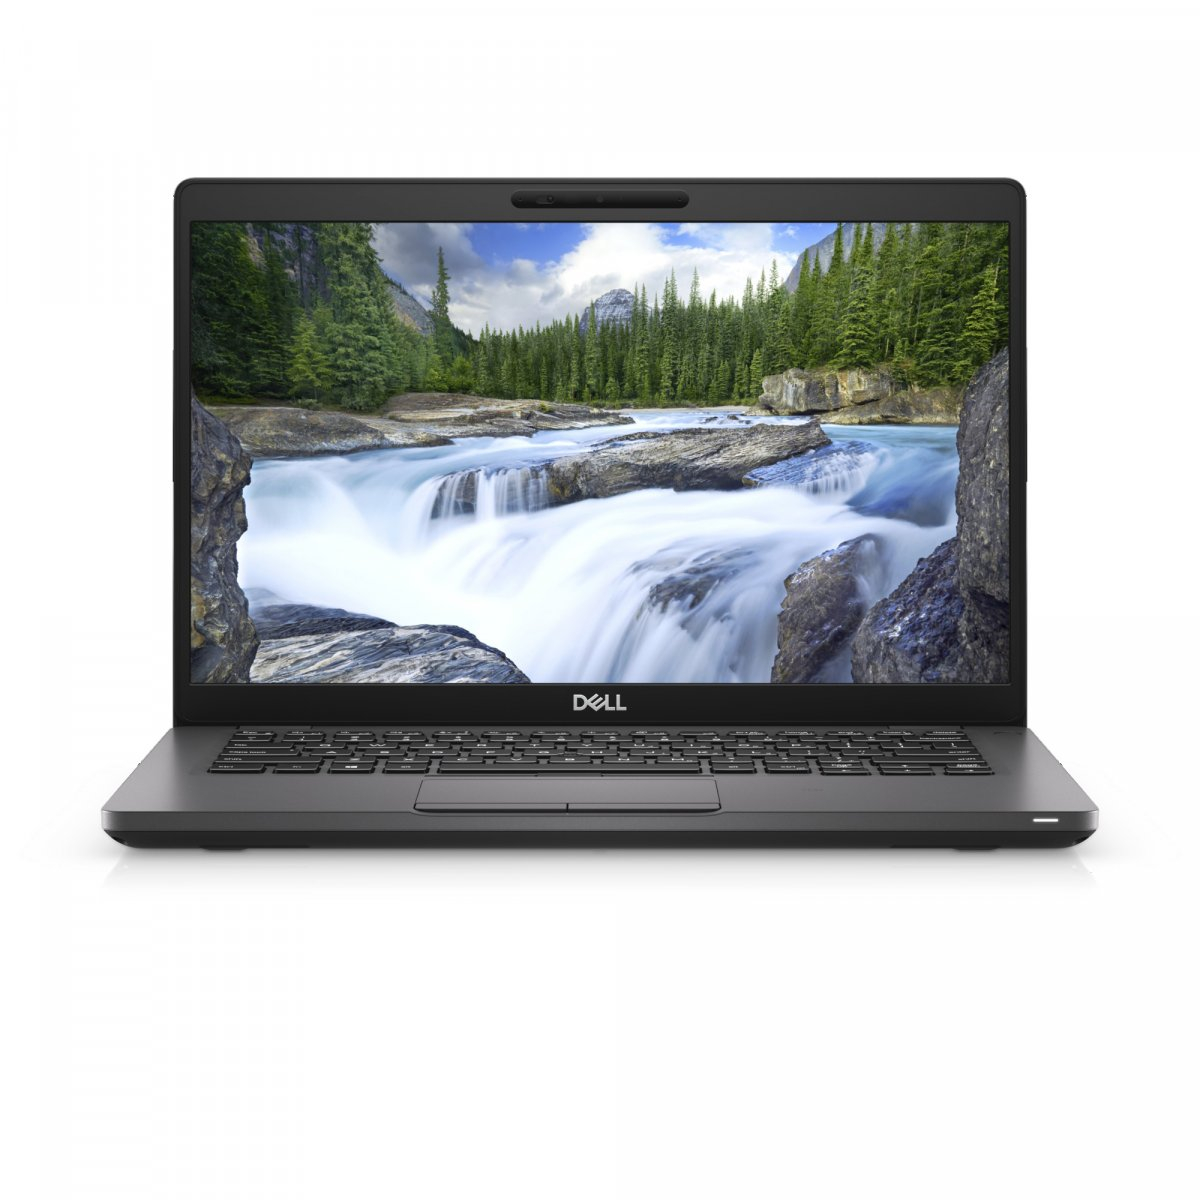 Laptop DELL Latitude 5400 14'' FHD i5-8365U 8GB 256GB SSD FPR SCR WIFI BT BK W10P 3YNBD